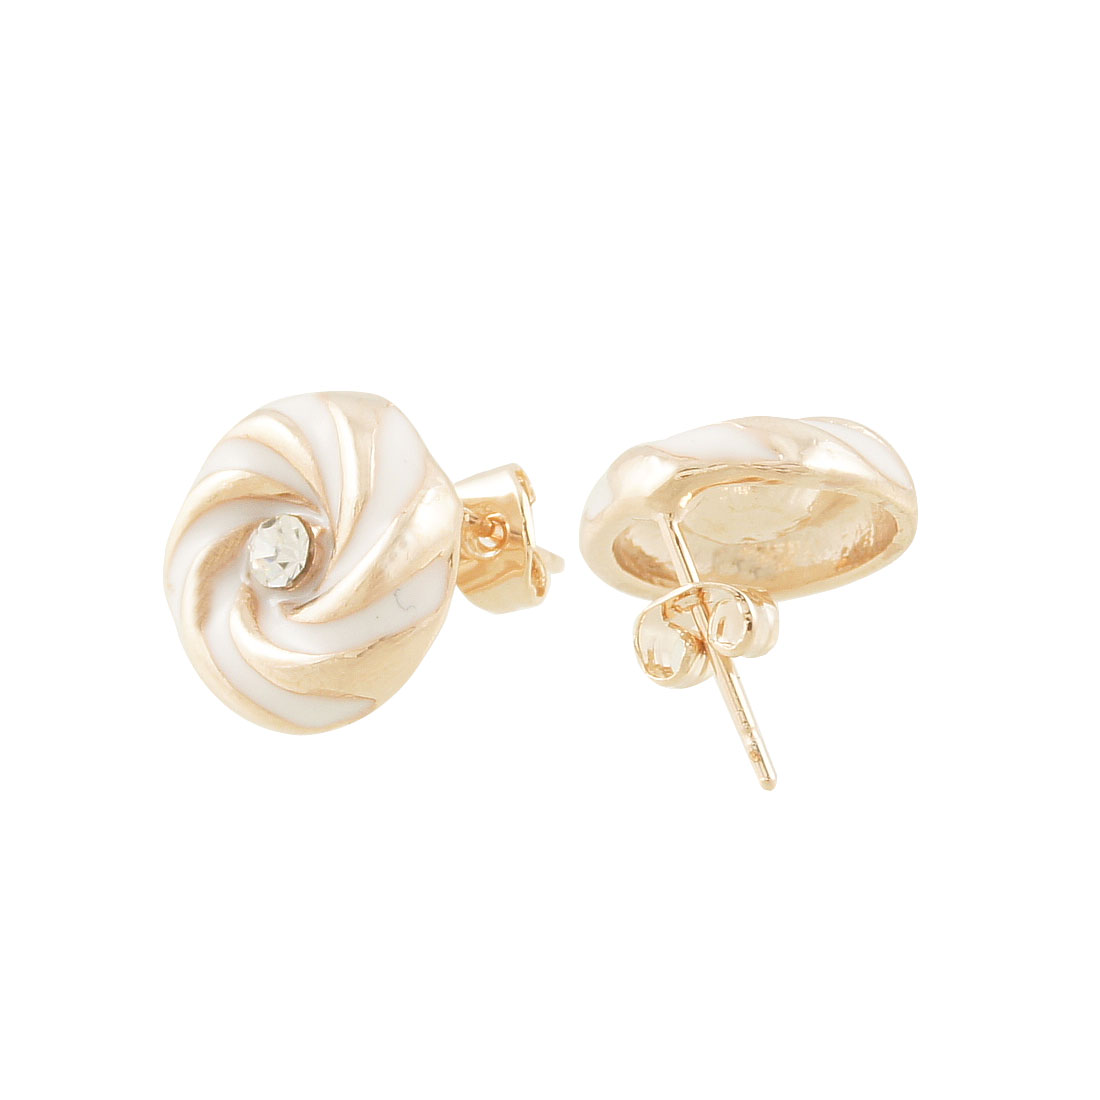 Pair Round Swirl Lollipop Ear Nail Pin Stud Earrings Gold Tone White